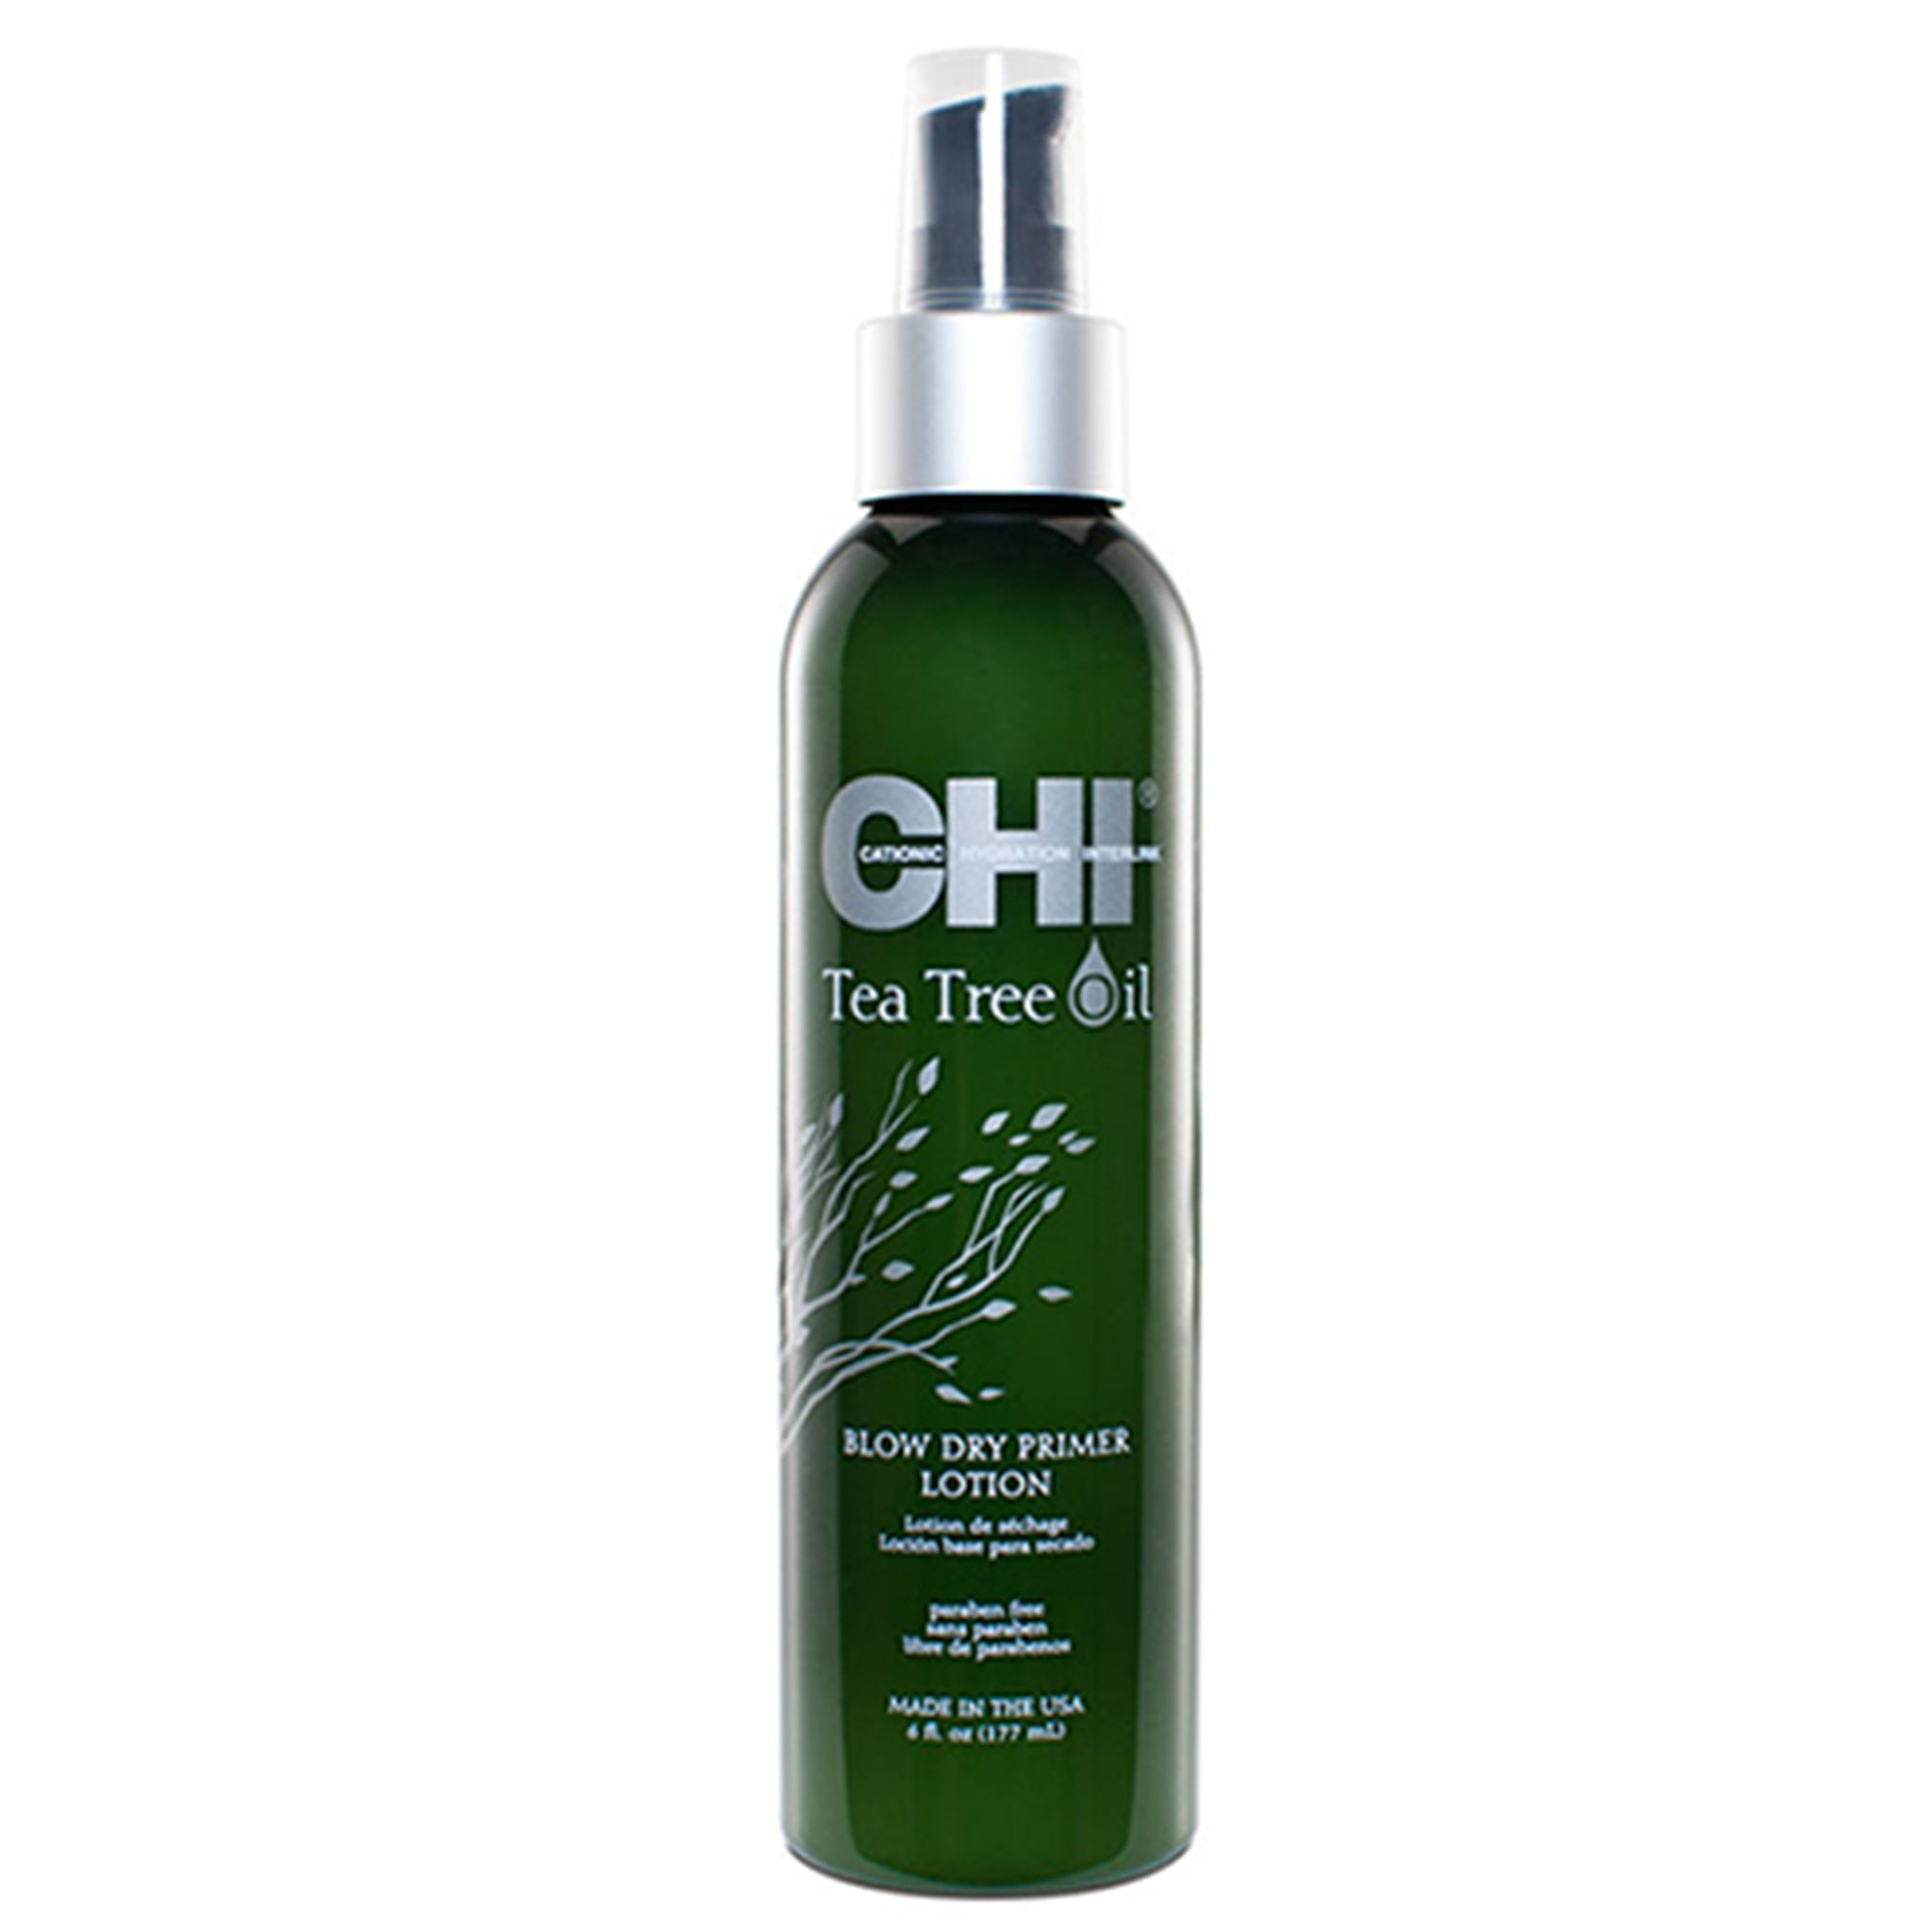 CHI TEA TREE OIL BLOW DRY PREMIER LOTION